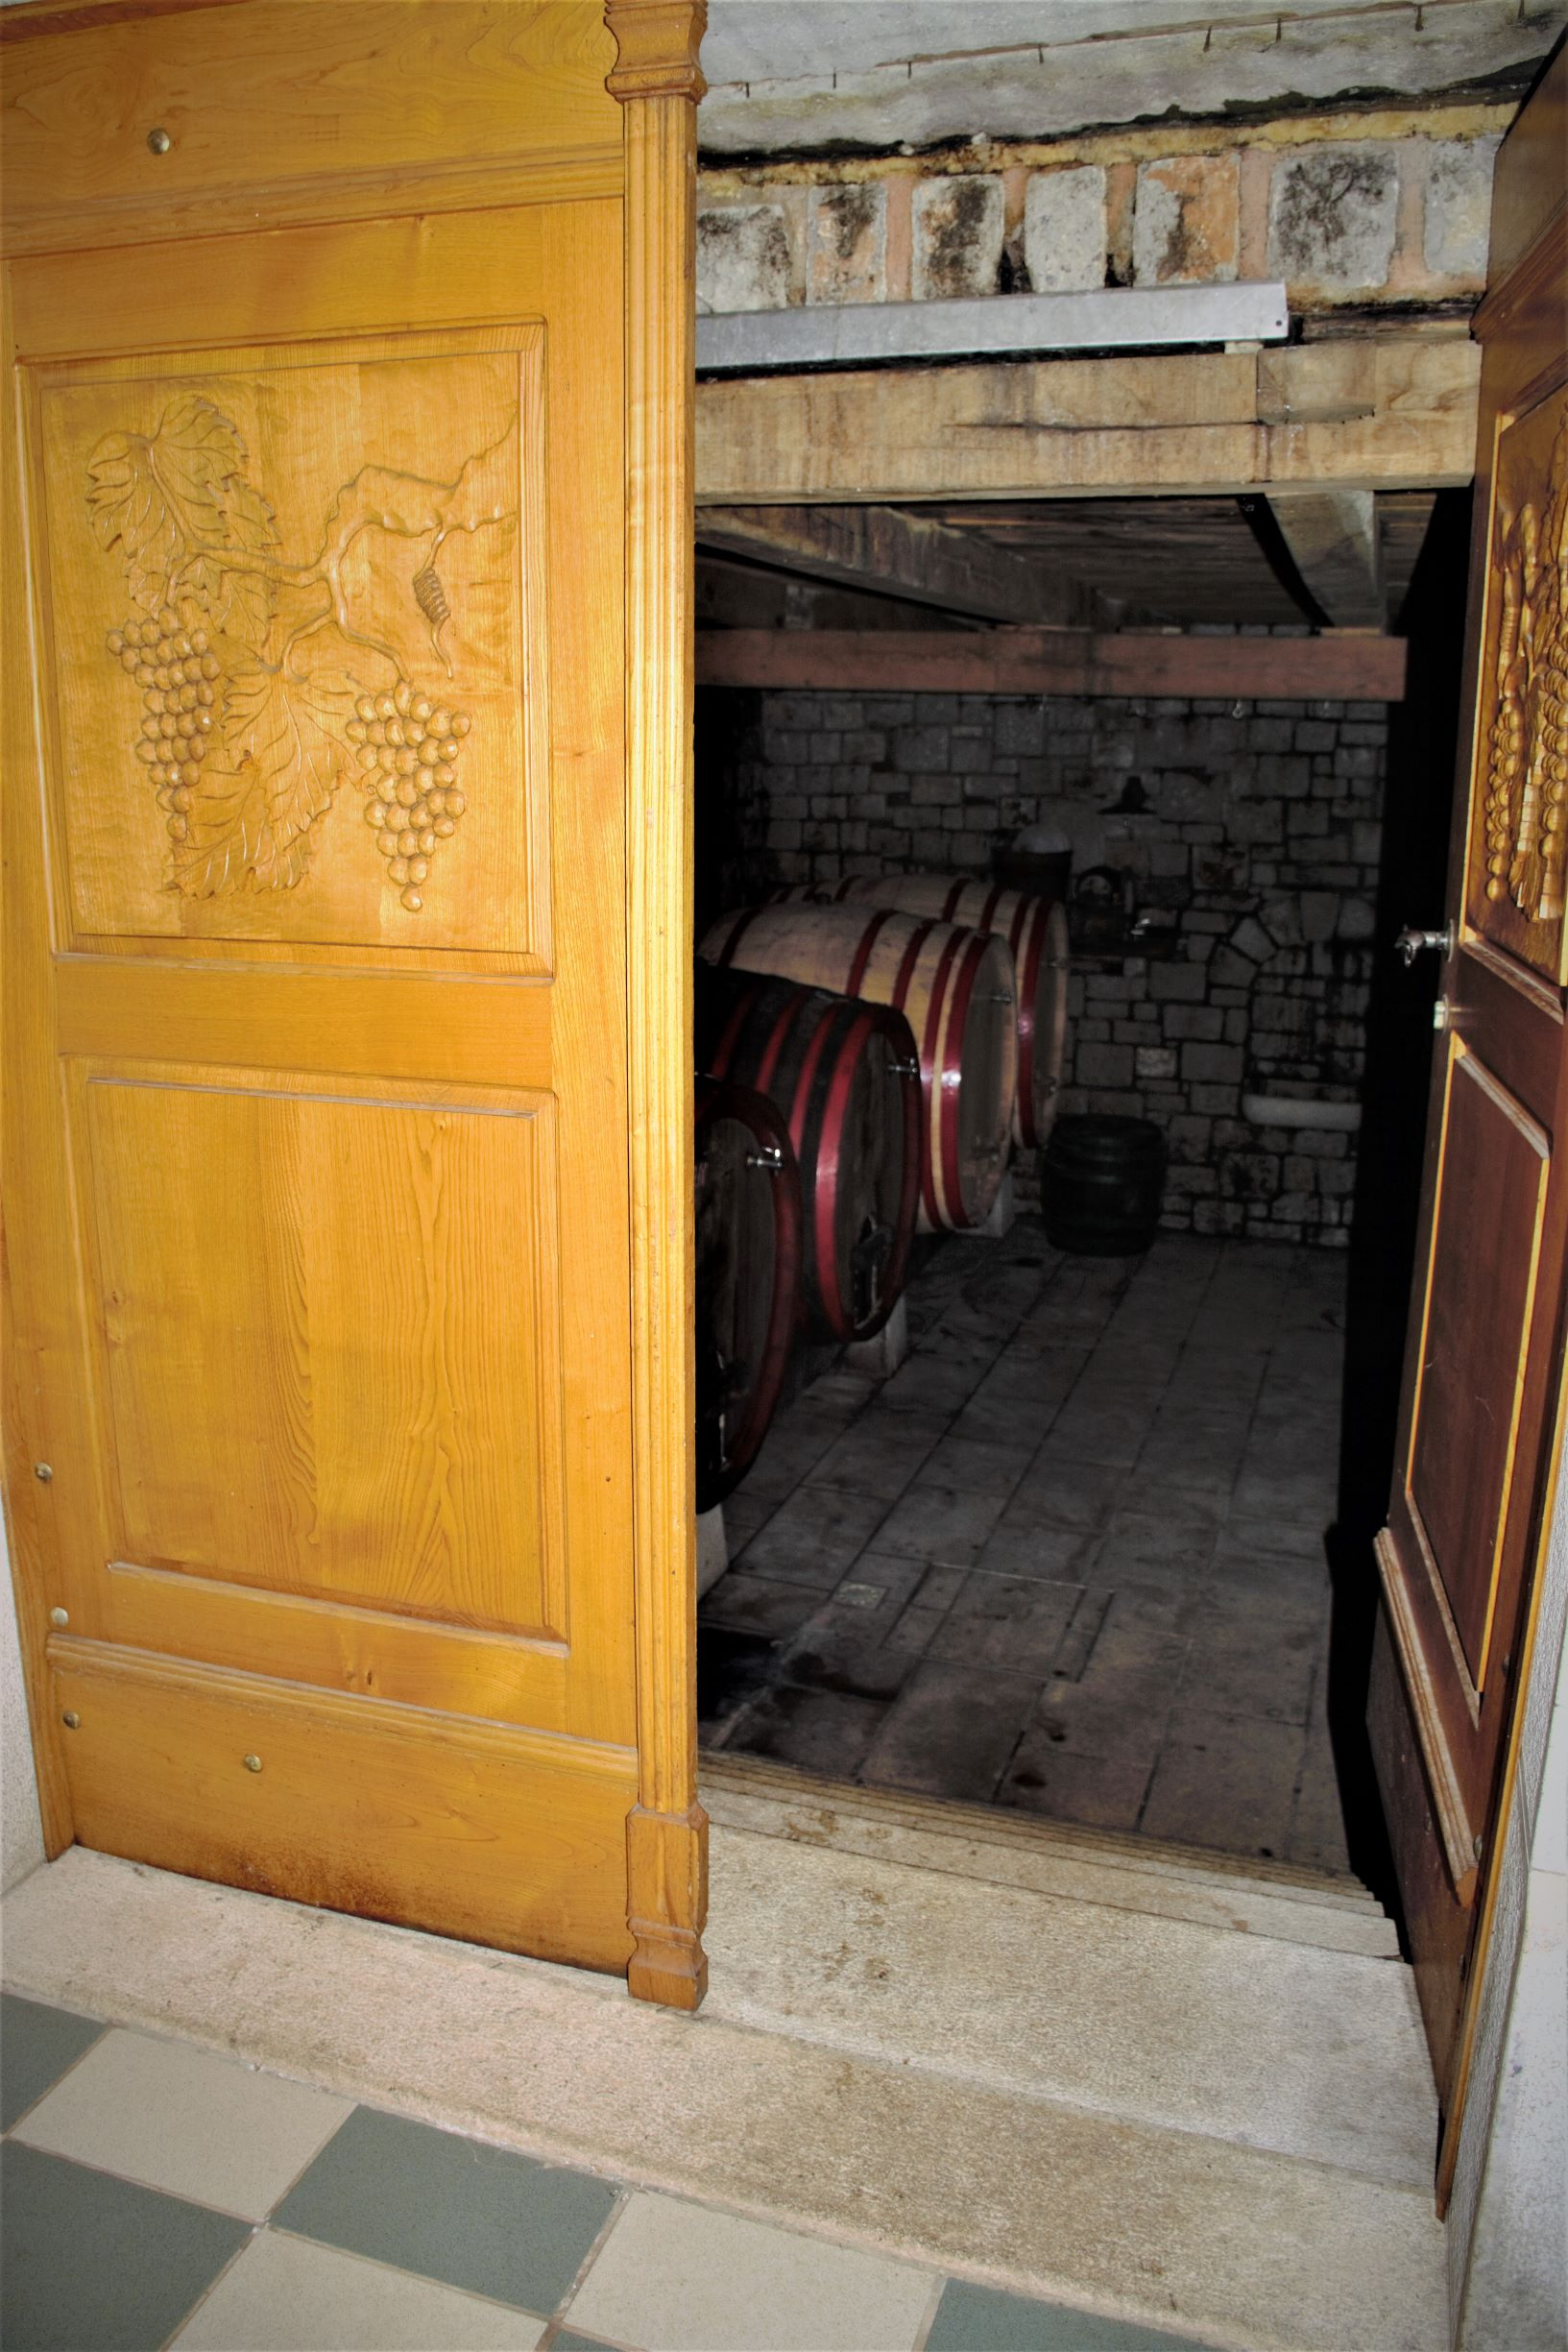 A guided tasting of wines and a visit to a wine cellar